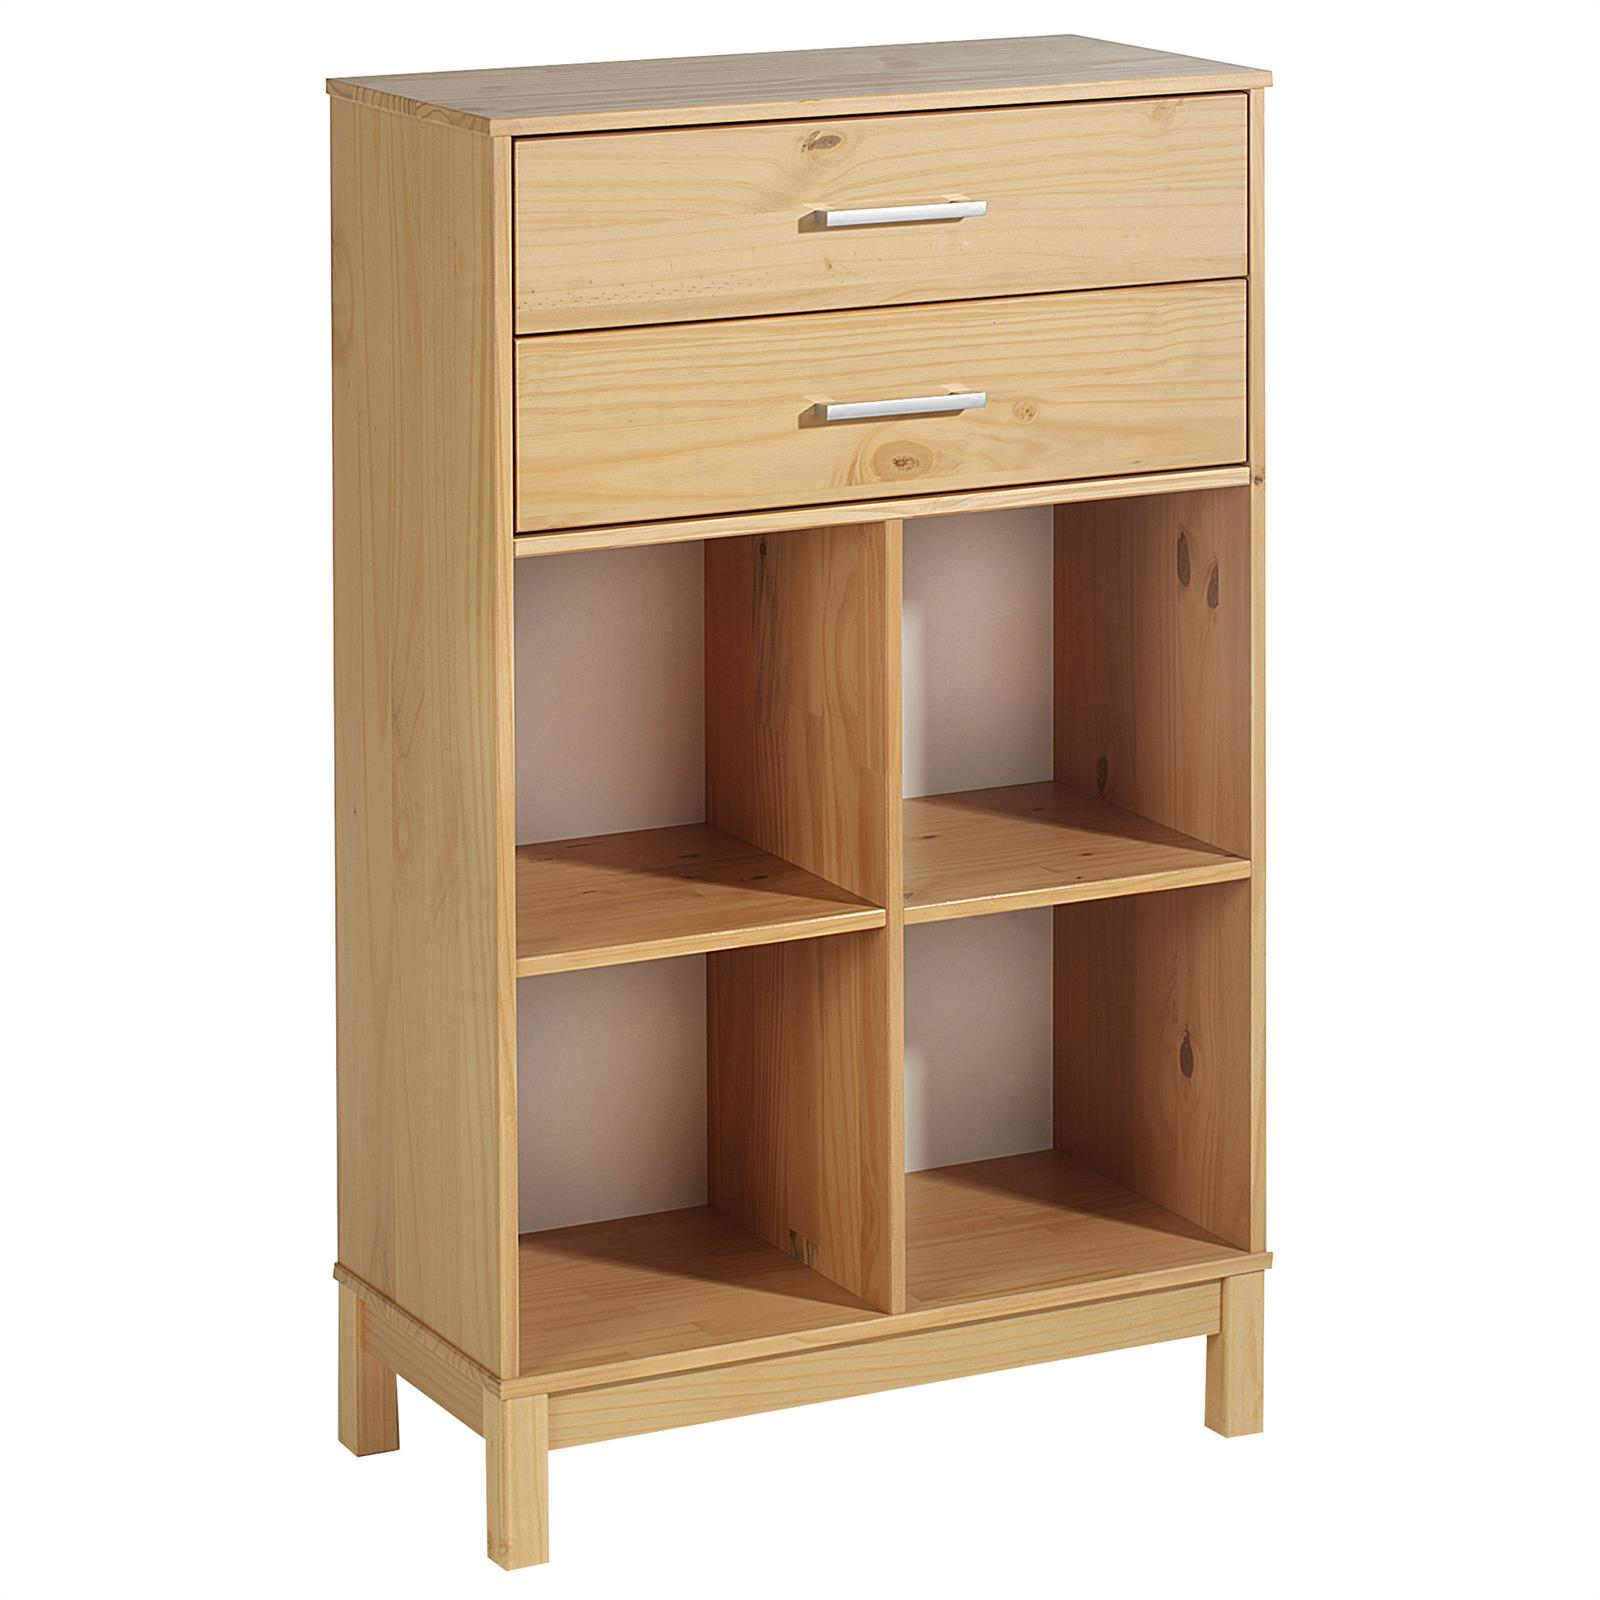 schubladenregal logo mit 4 f cher 2 schubladen kiefer buchefarben mobilia24. Black Bedroom Furniture Sets. Home Design Ideas